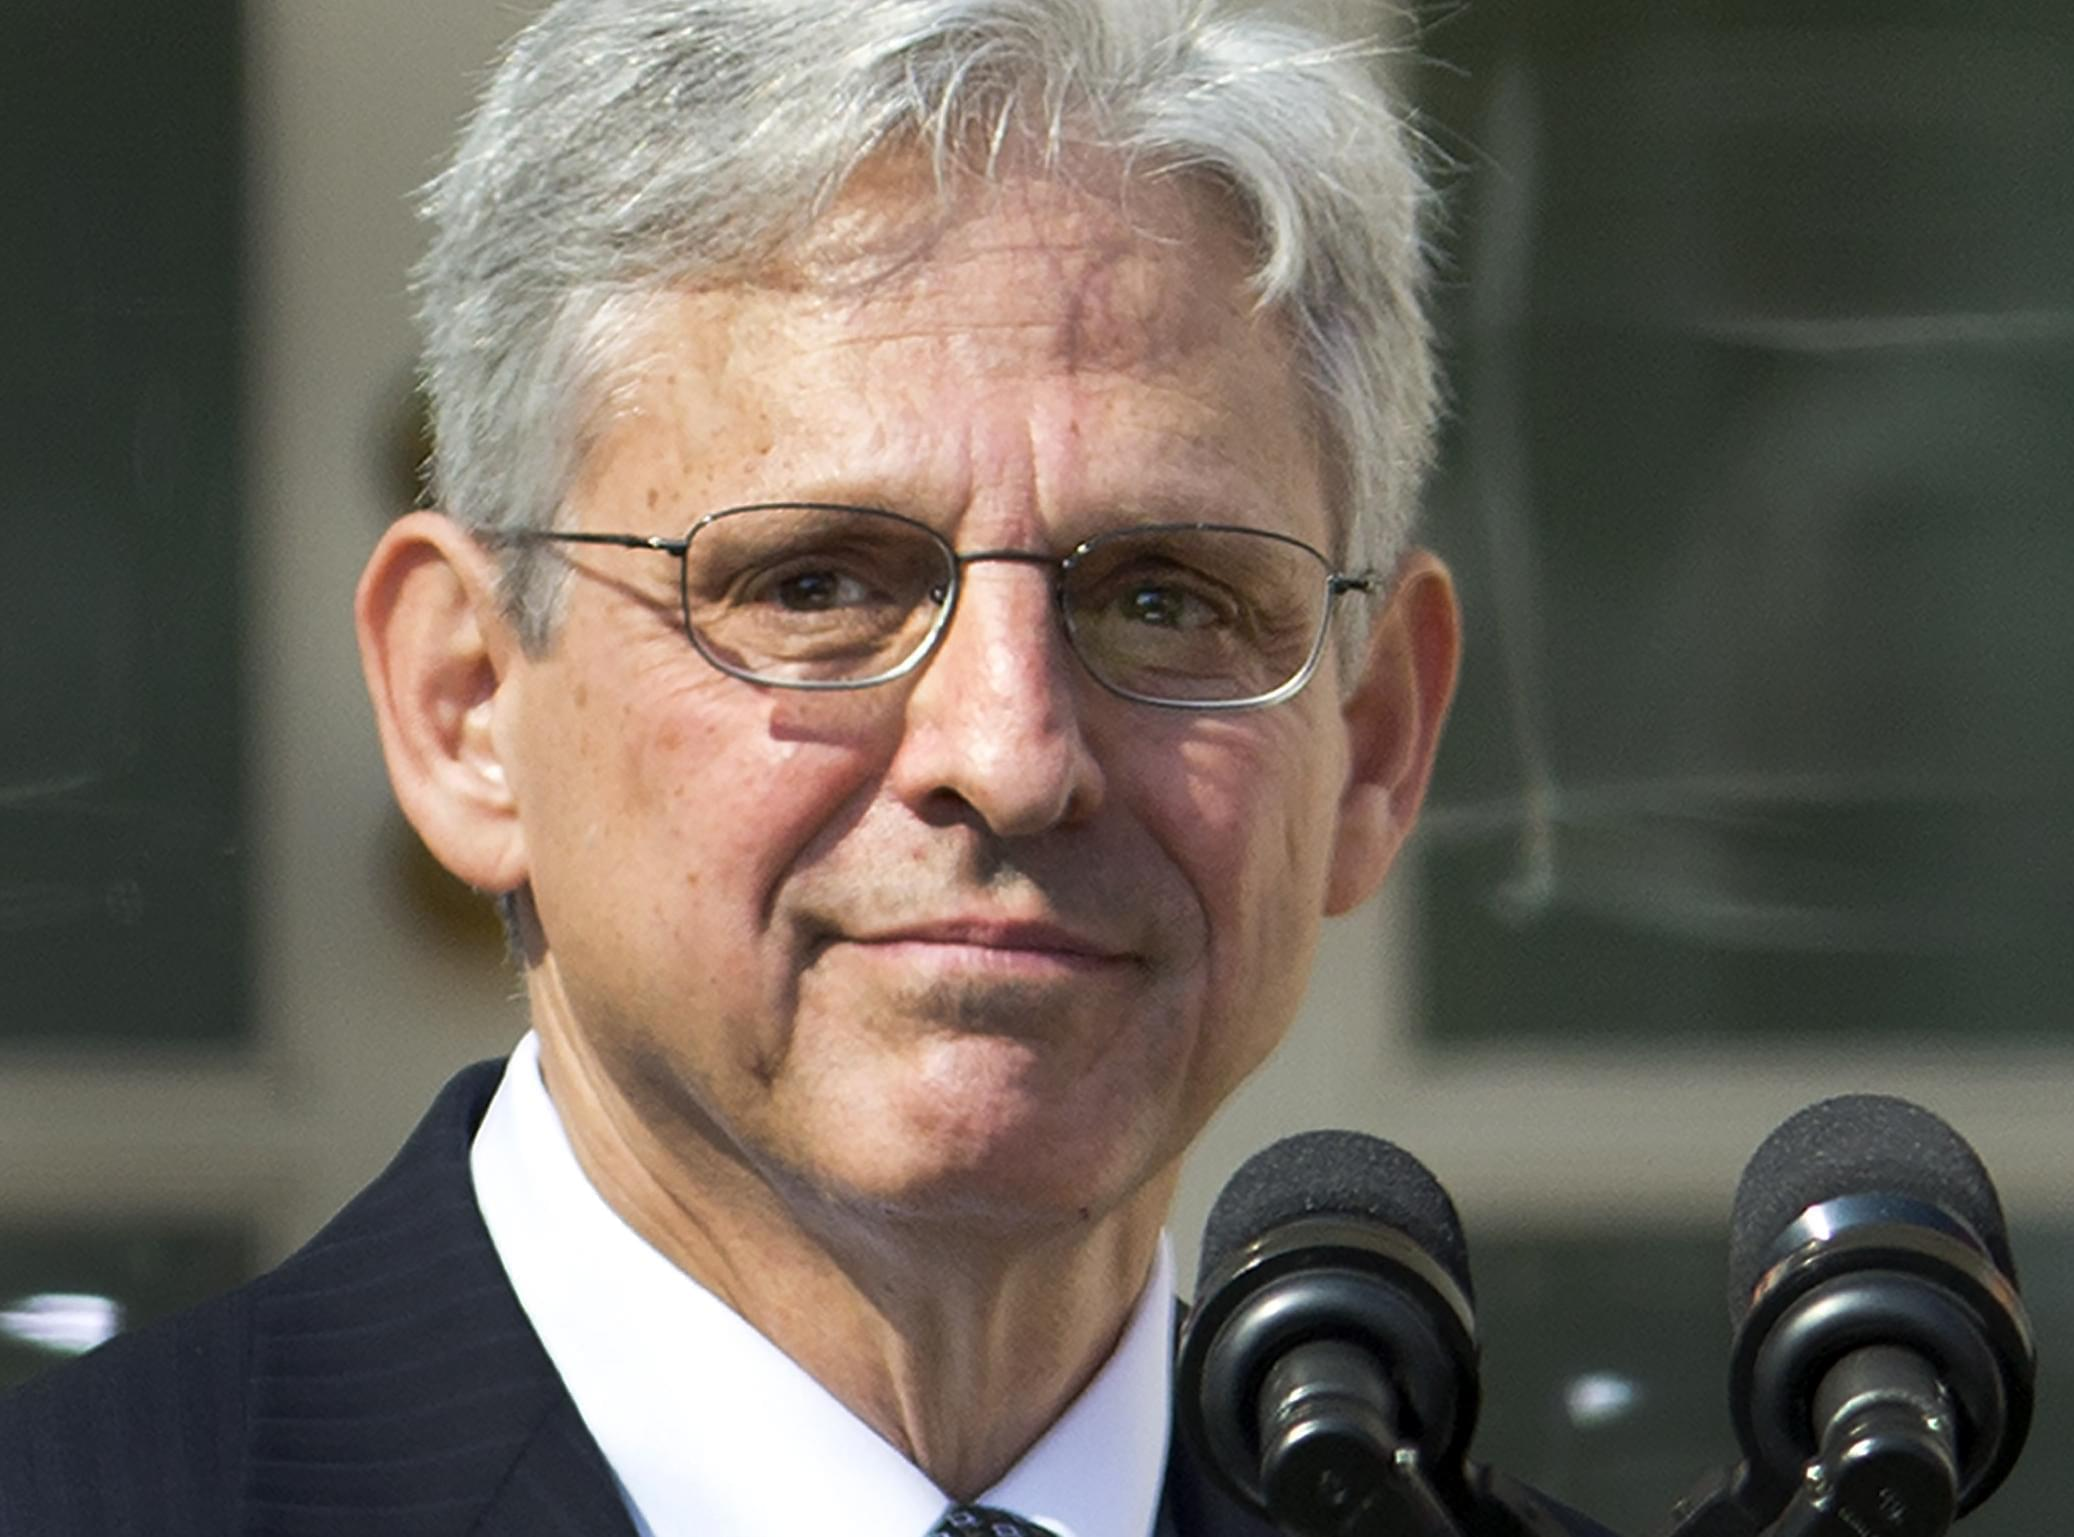 Federal appeals court judge Merrick Garland is introduced as President Barack Obama's nominee for the Supreme Court during an announcement in the Rose Garden of the White House, in Washington, Wednesday, March 16, 2016.